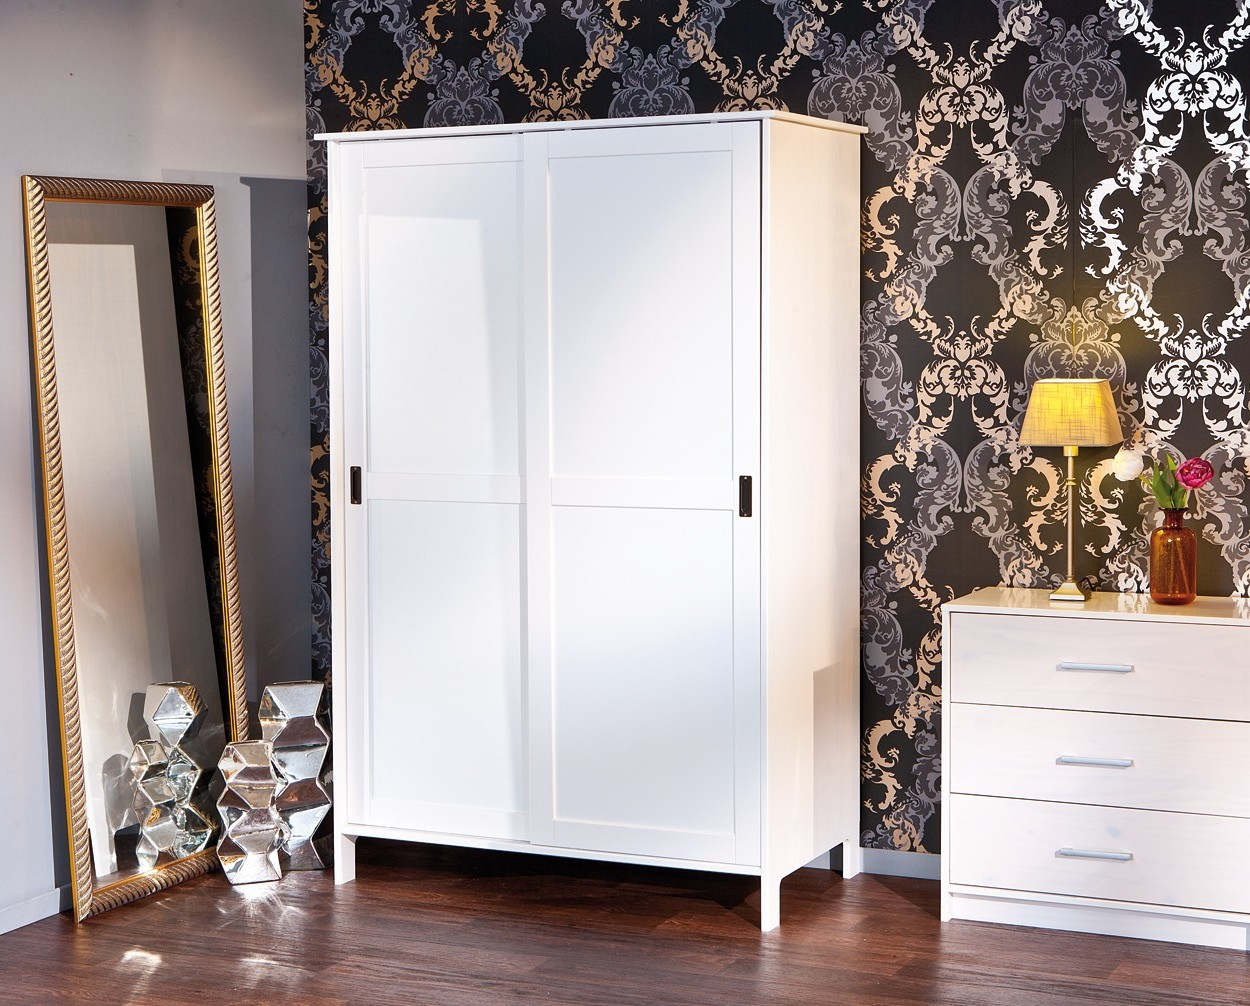 armoire blanche 2 porte coulissante armoire id es de. Black Bedroom Furniture Sets. Home Design Ideas